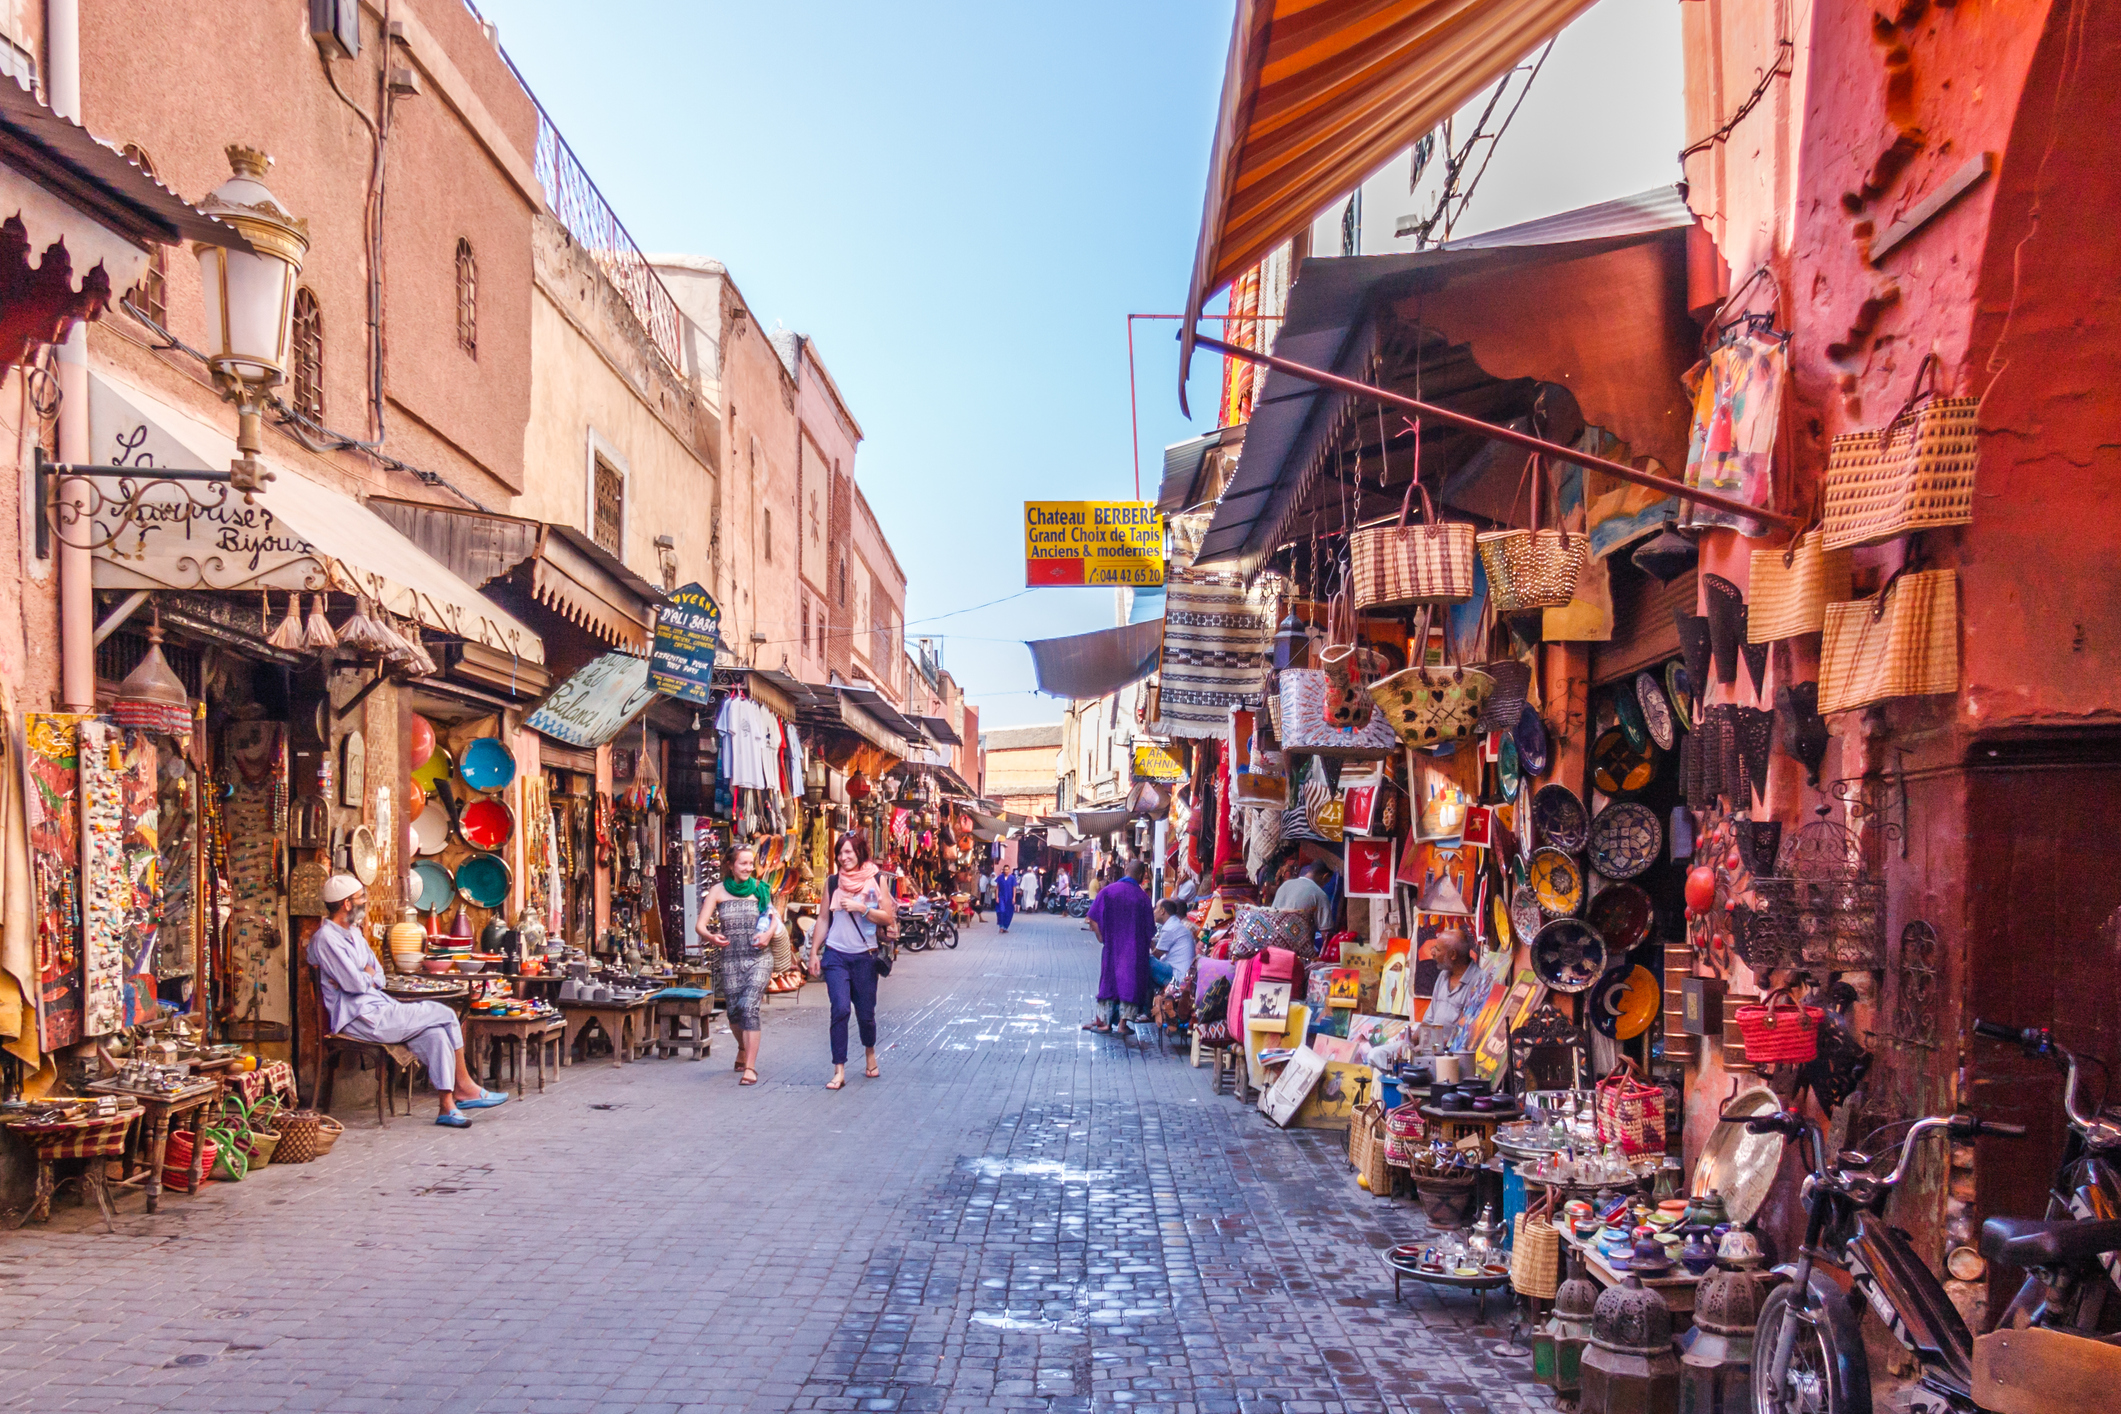 A walk through the different souks and medinas of Morocco